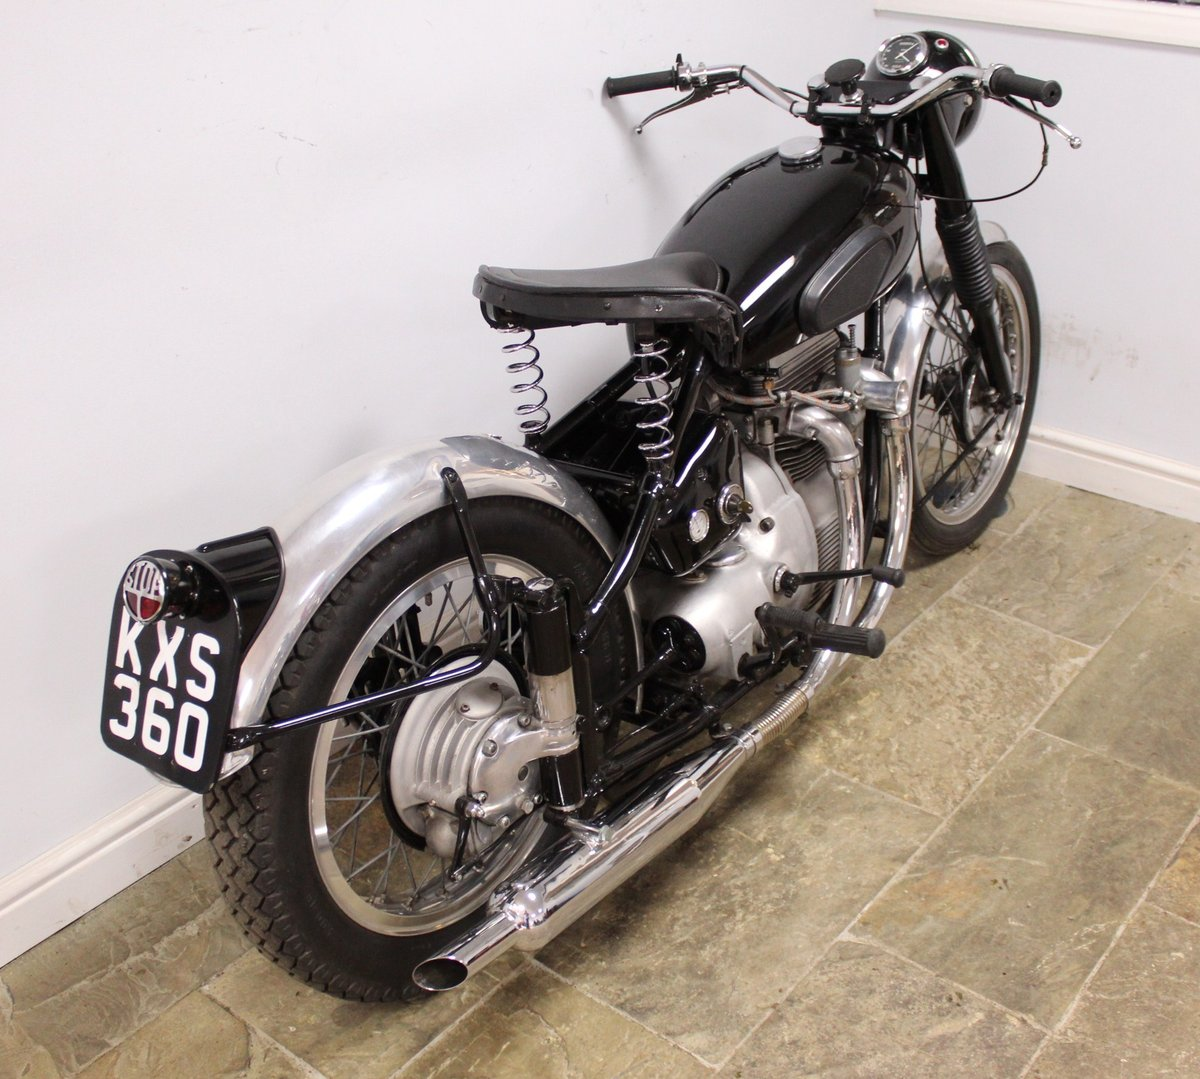 1950 Sunbeam S8 Presented in excellent condition For Sale (picture 3 of 6)